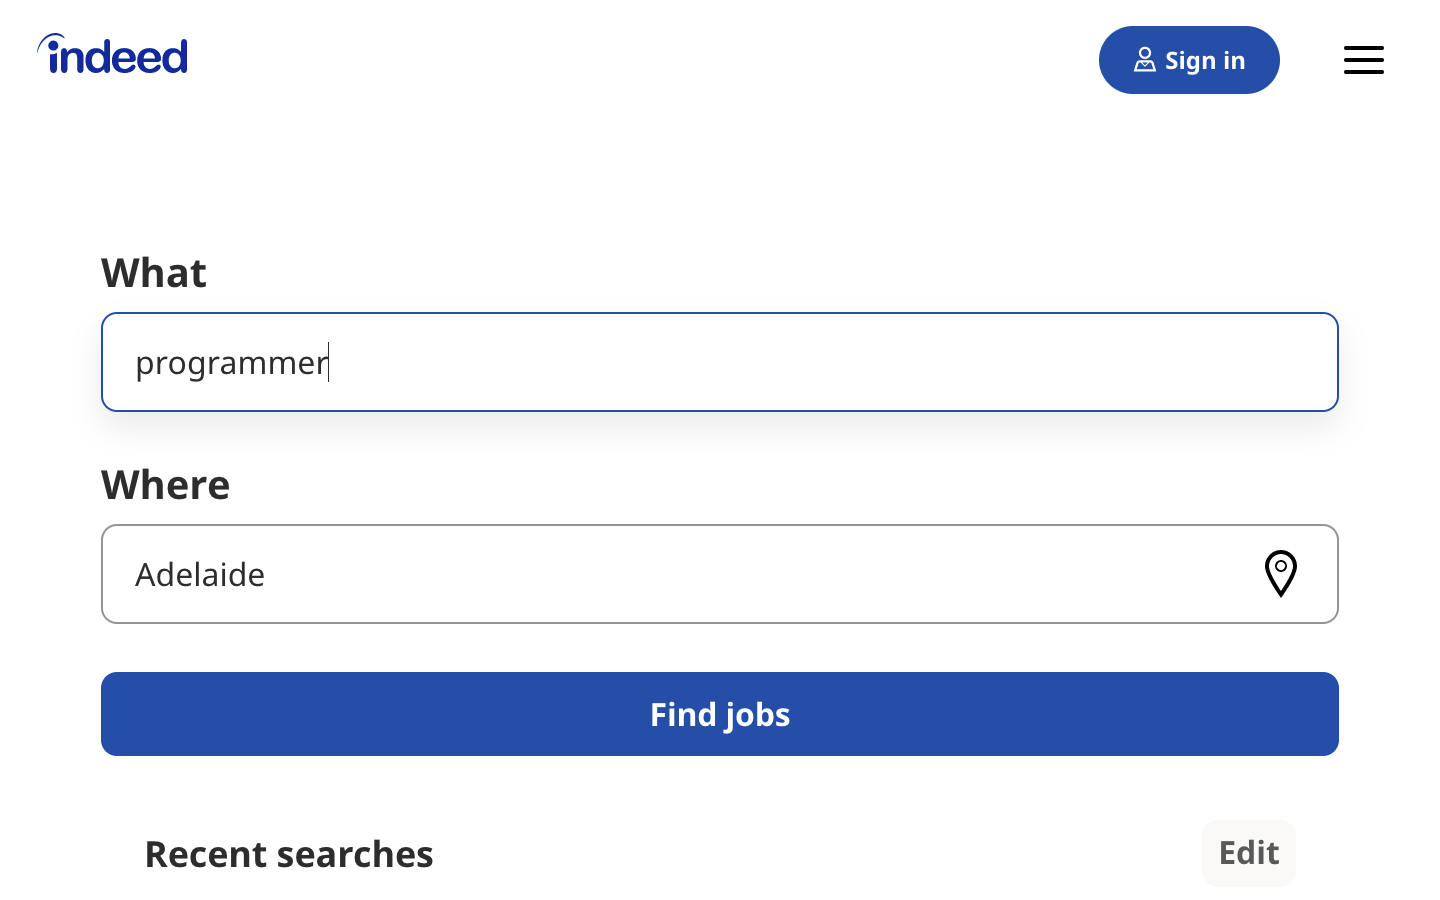 Search interface of the Indeed job board